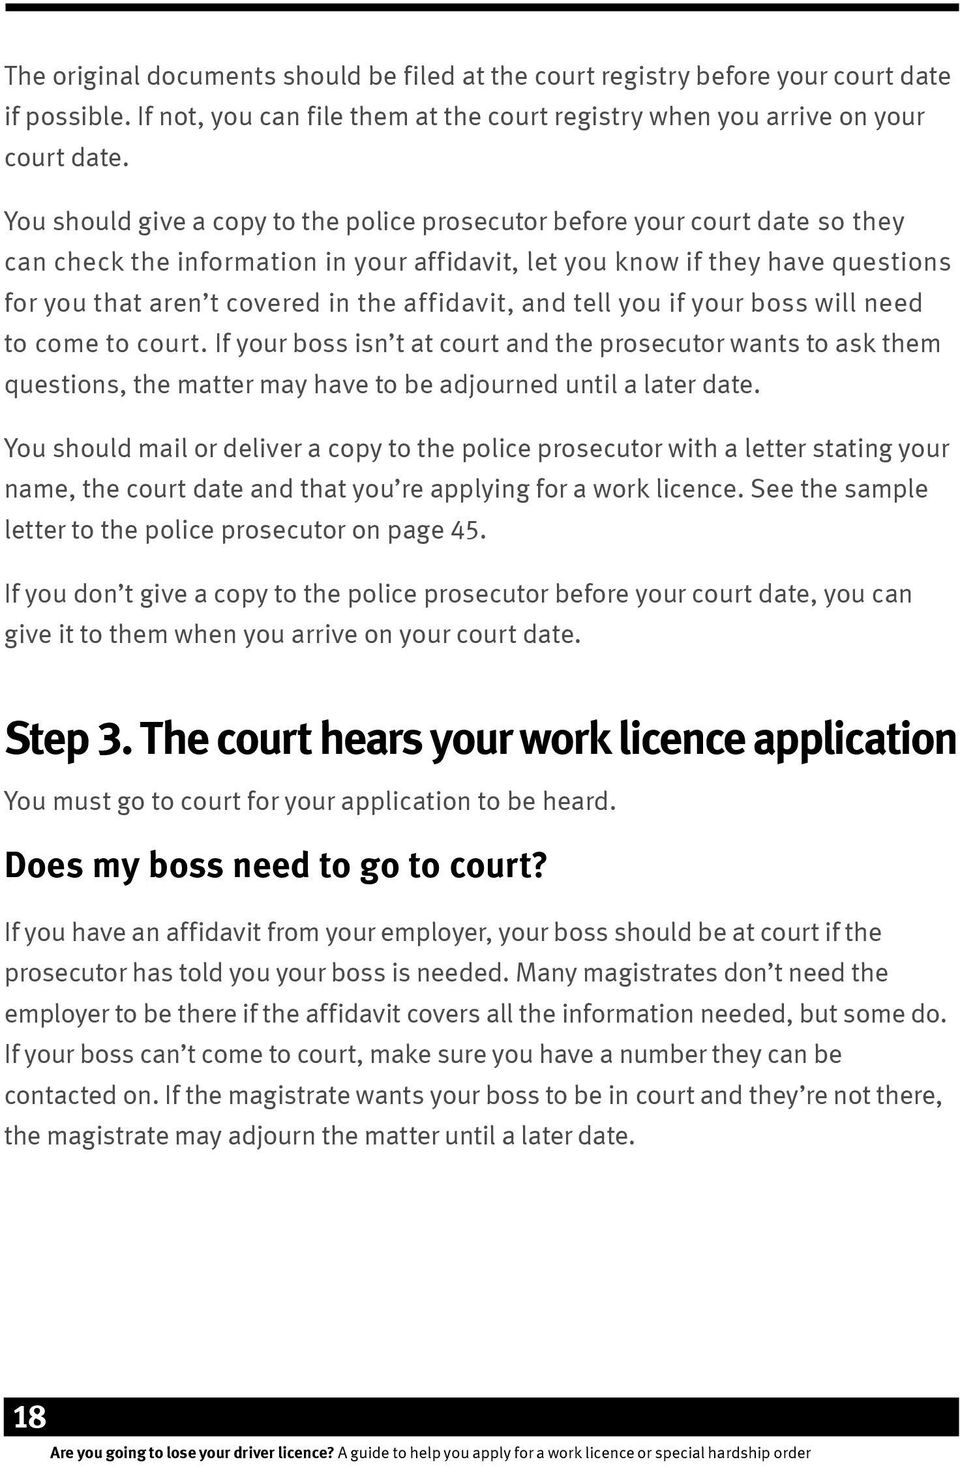 affidavit, and tell you if your boss will need to come to court. If your boss isn t at court and the prosecutor wants to ask them questions, the matter may have to be adjourned until a later date.